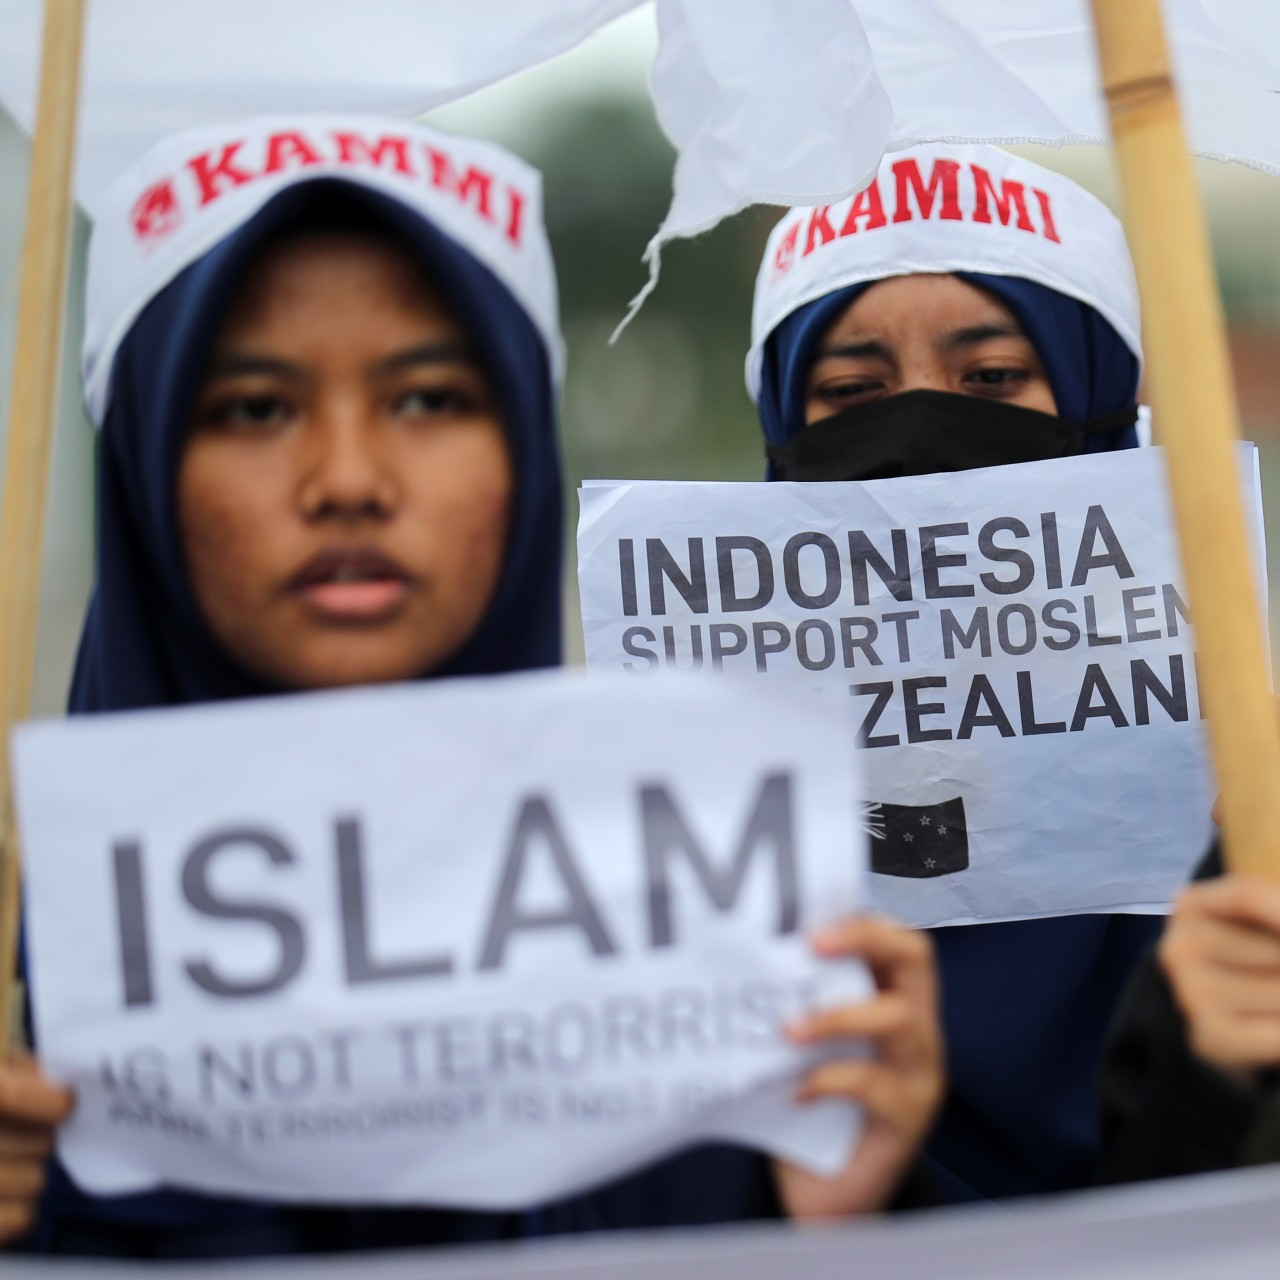 How moderate Islam in Indonesia counters the religious